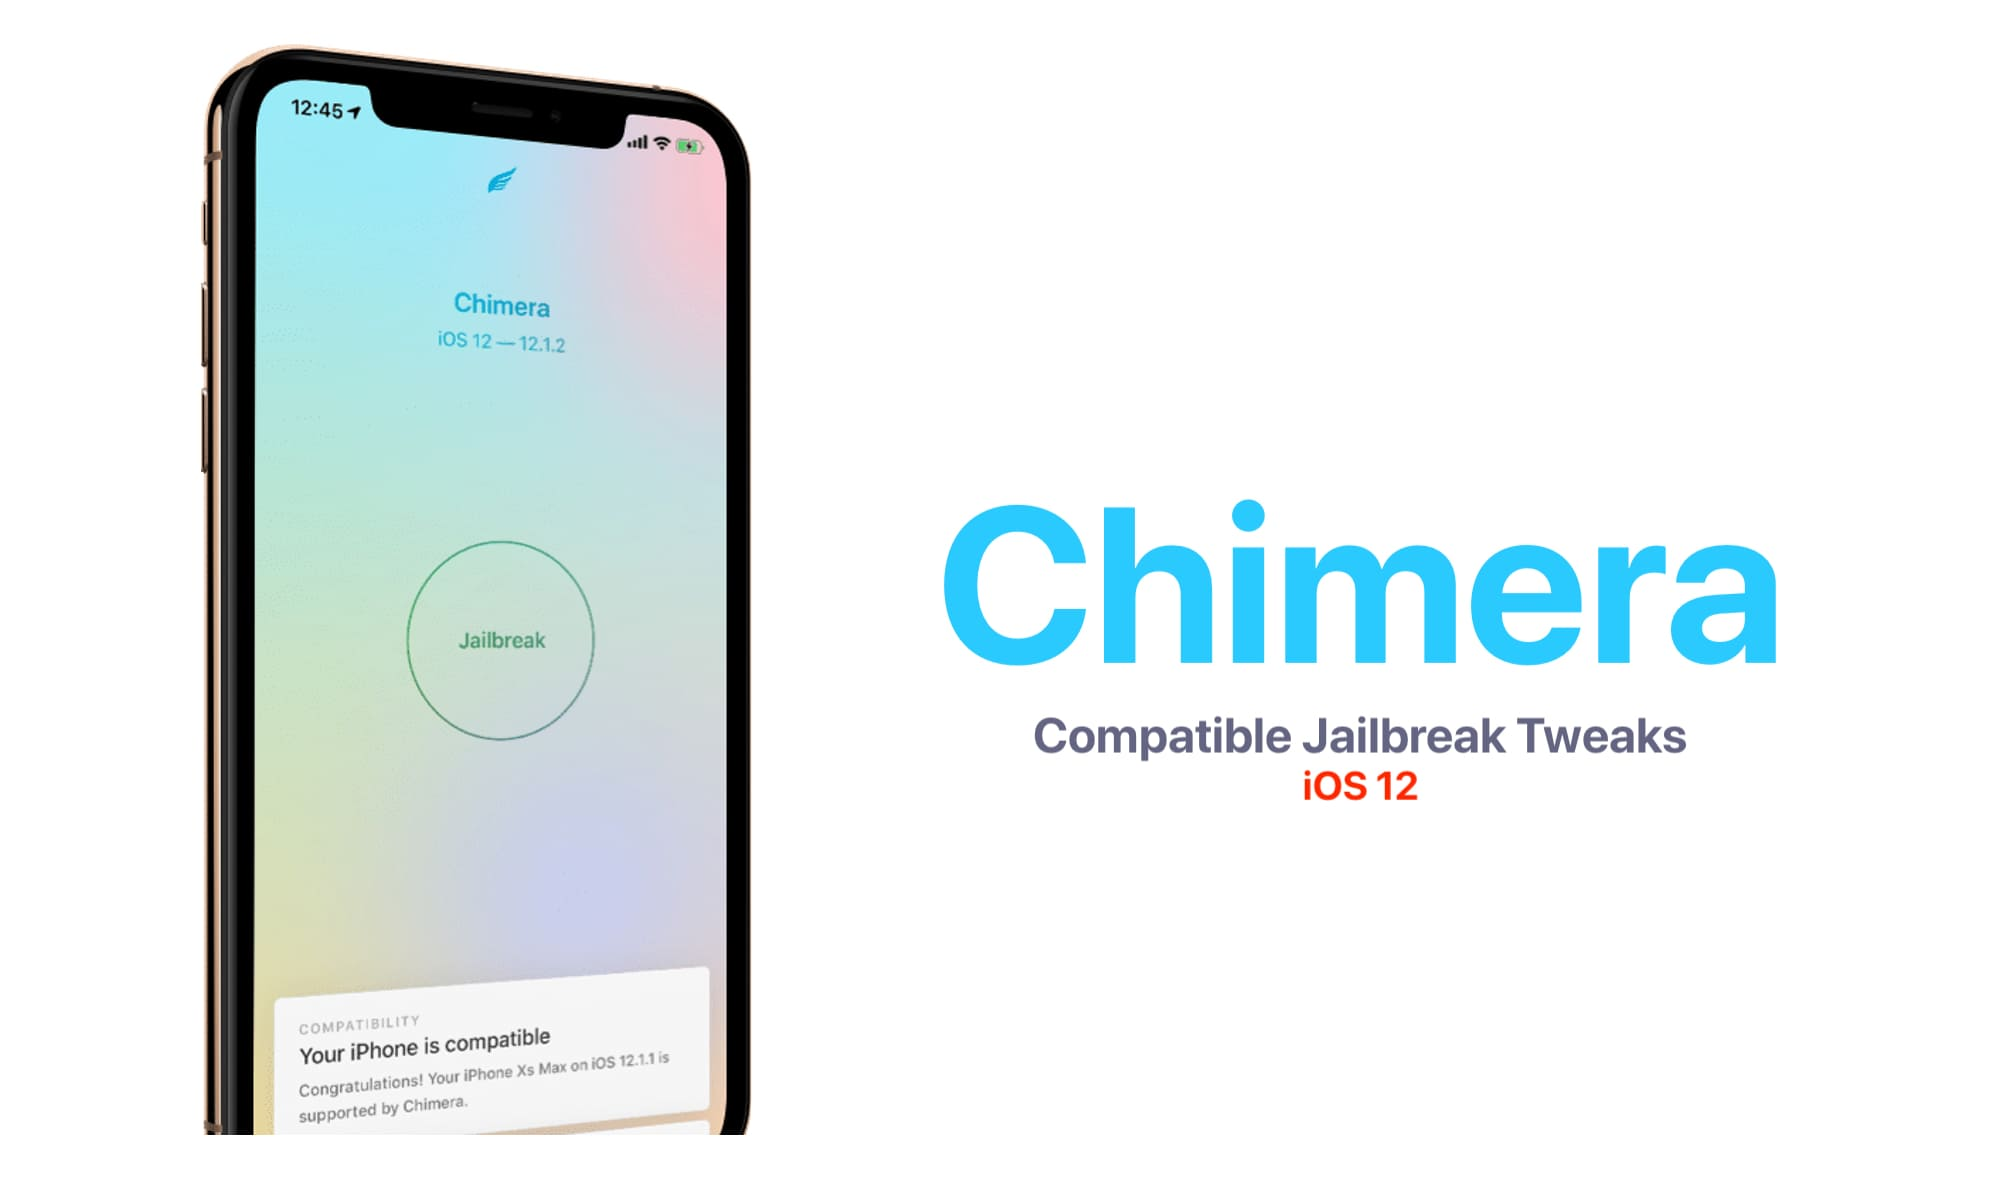 Download Chimera Jailbreak for iPhone XS Max [iOS 12